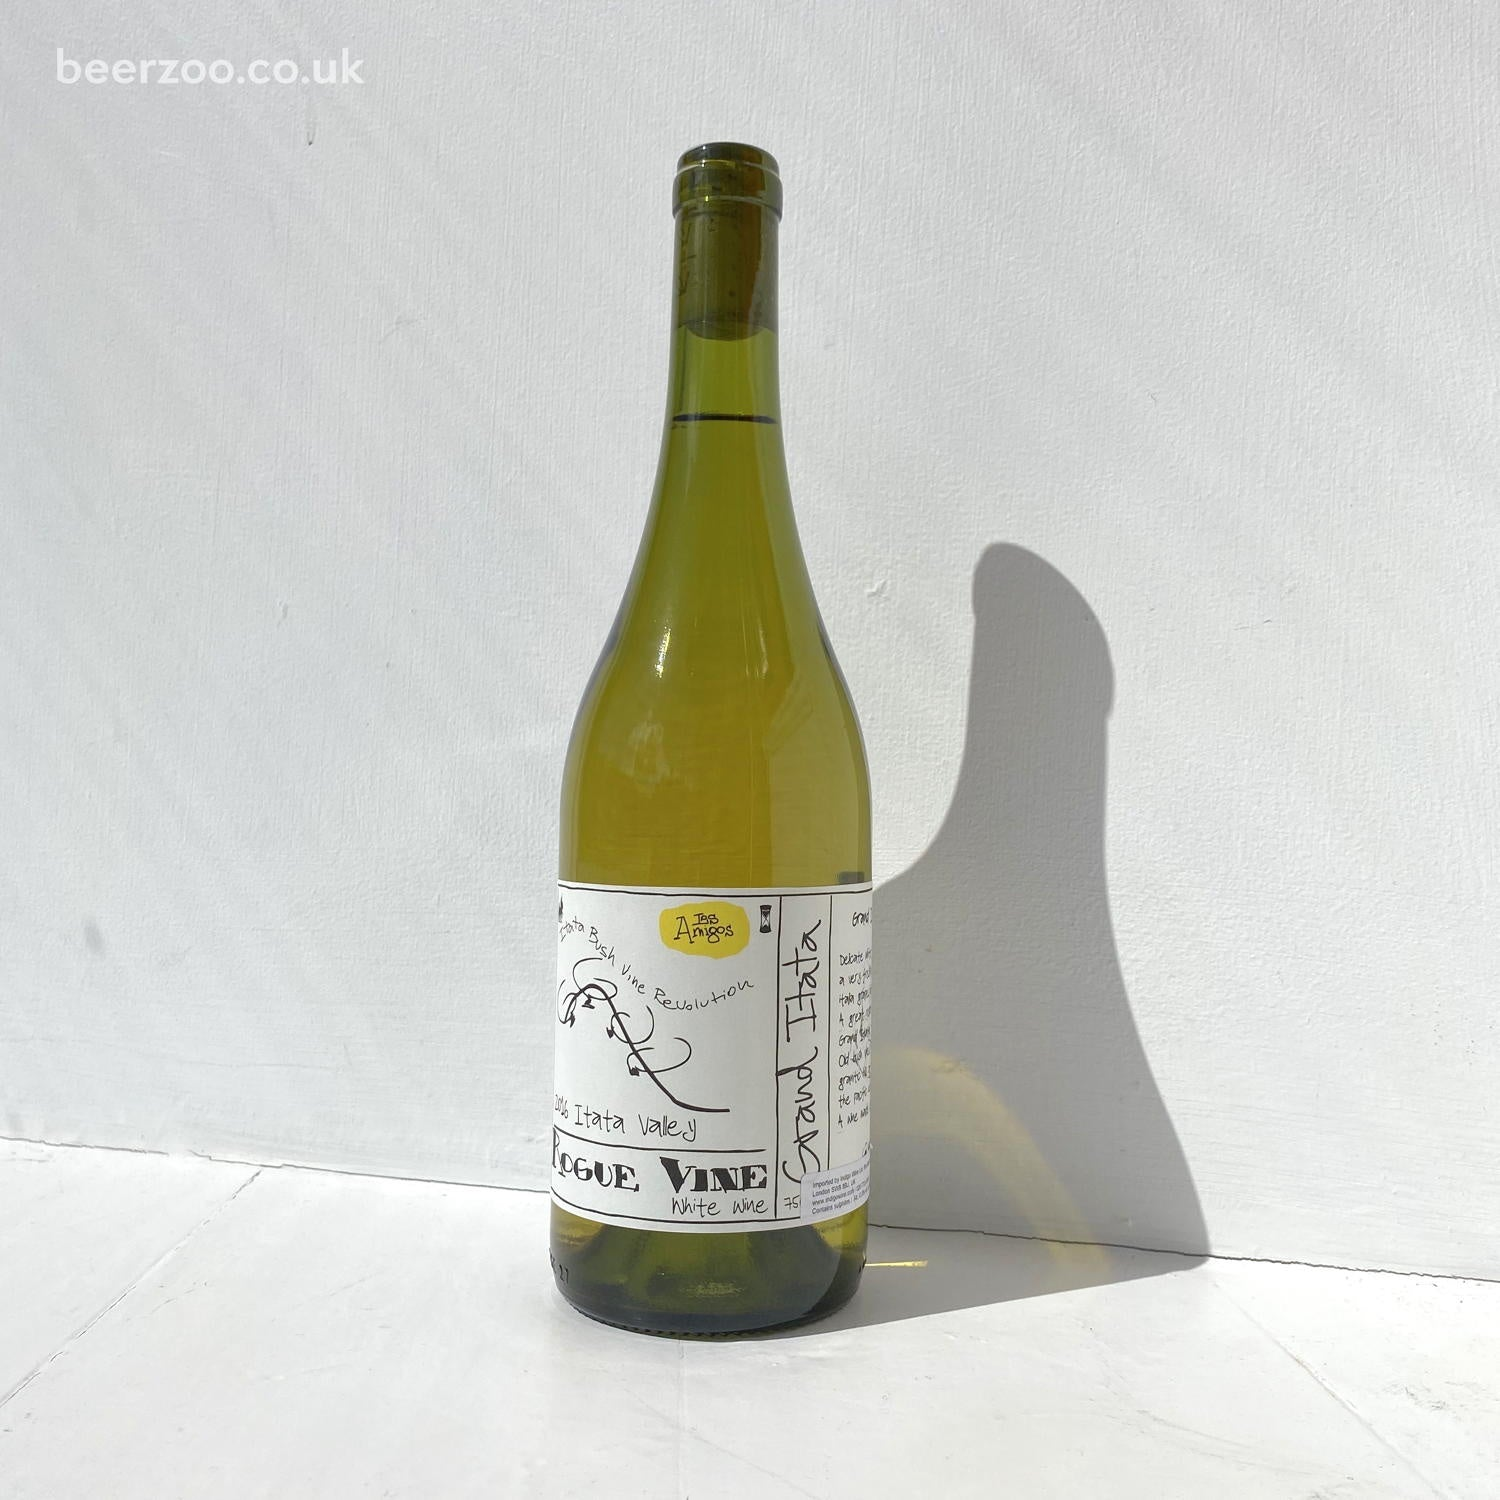 Rogue Vine - Grand Itata Blanco 12.8% (750ml)